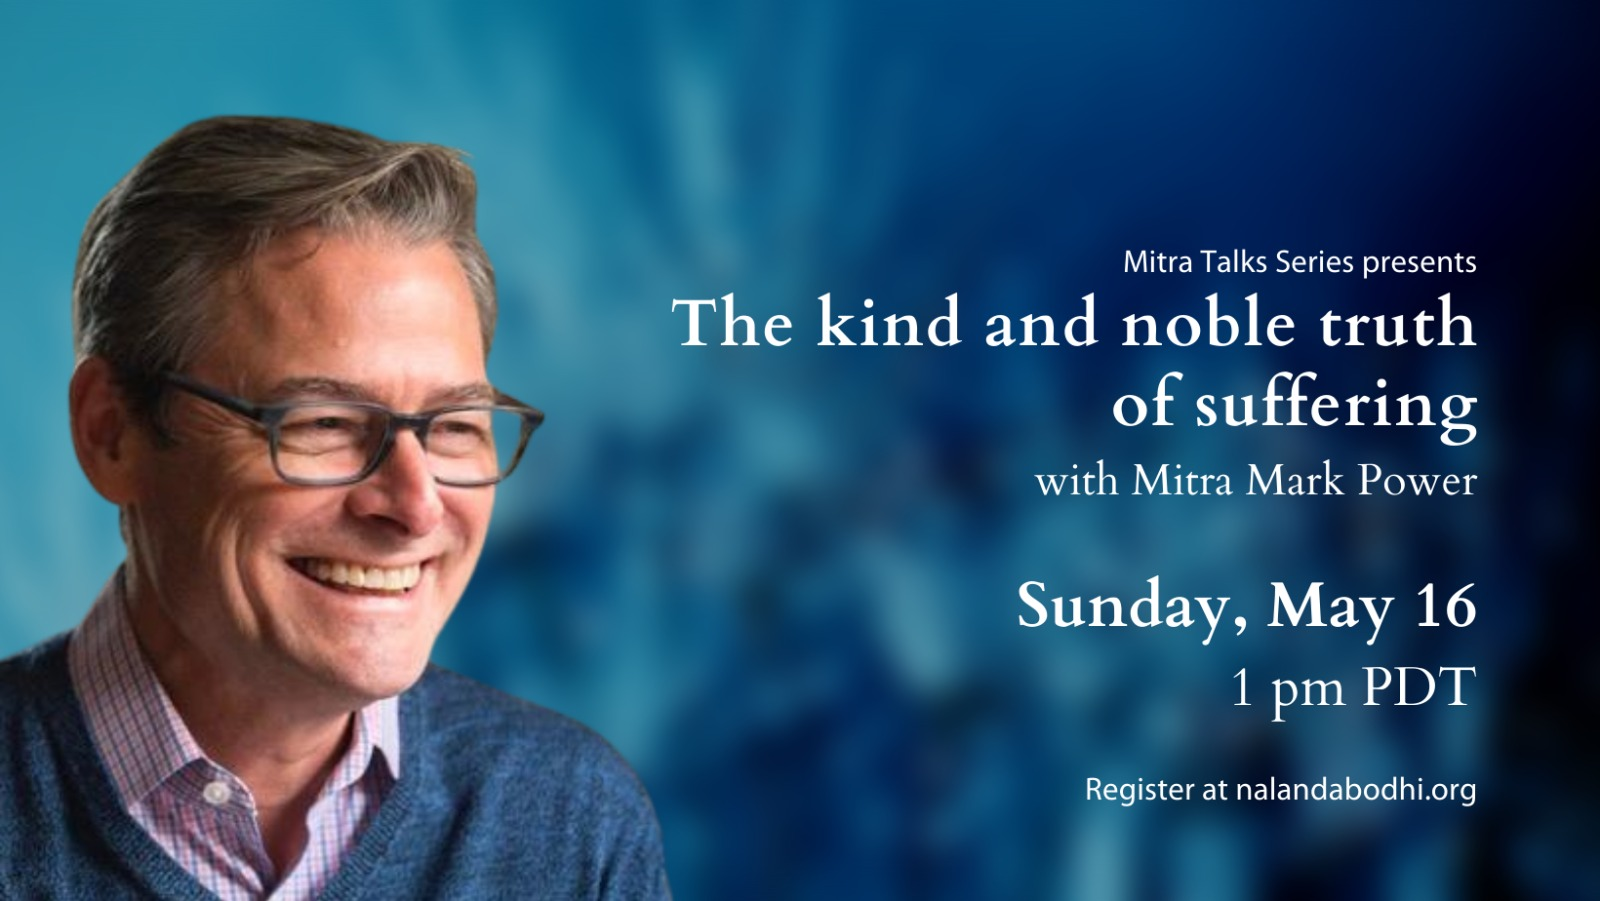 The Kind and Noble Truth of Suffering with Mitra Mark Power